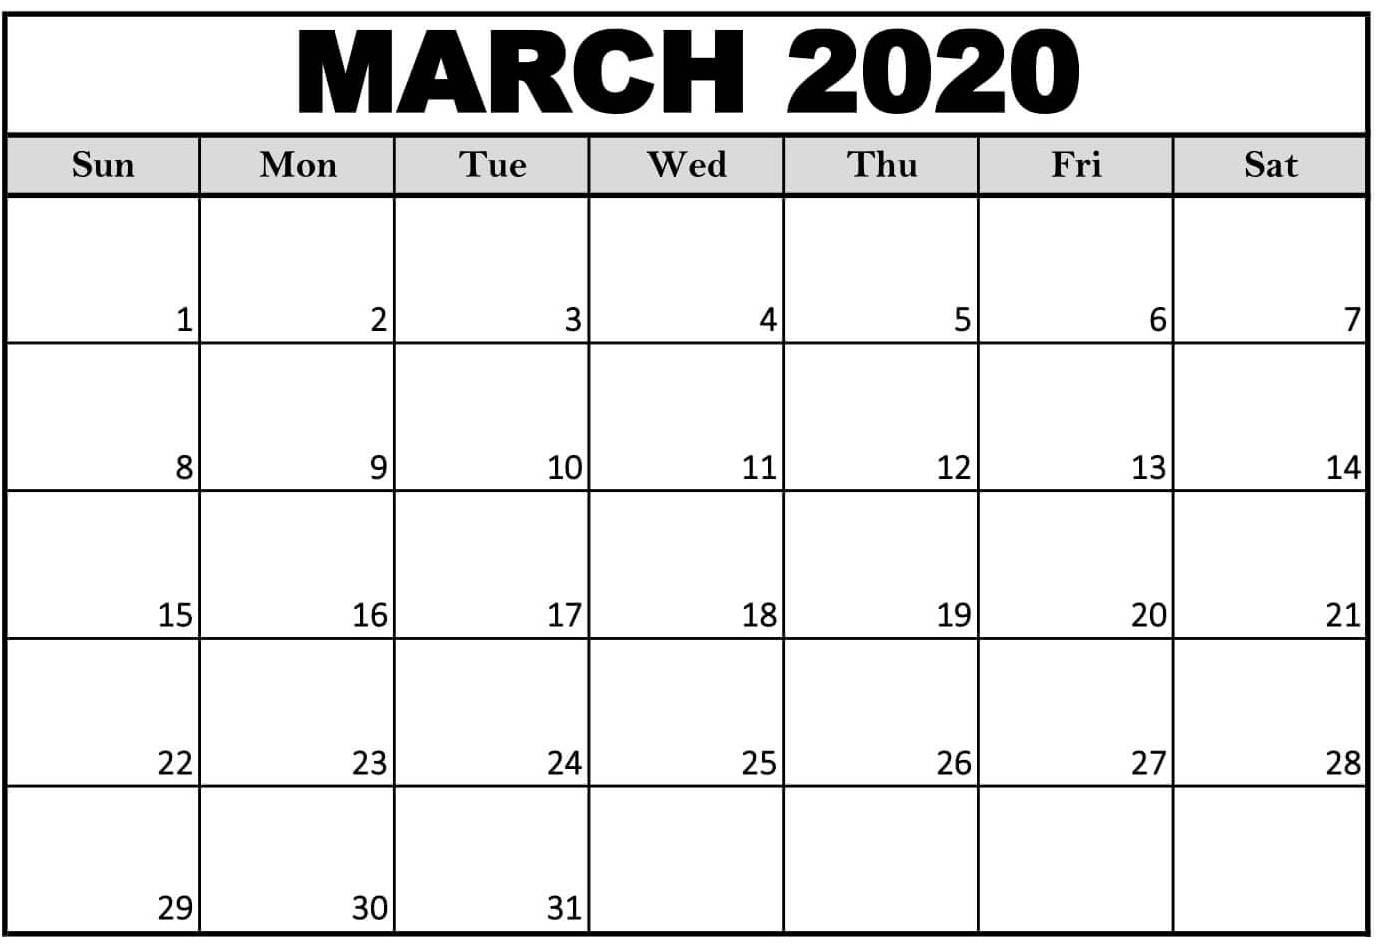 March 2020 Calendar Printable With Notes Excel Size - Set-2020 Calendar Excel Template